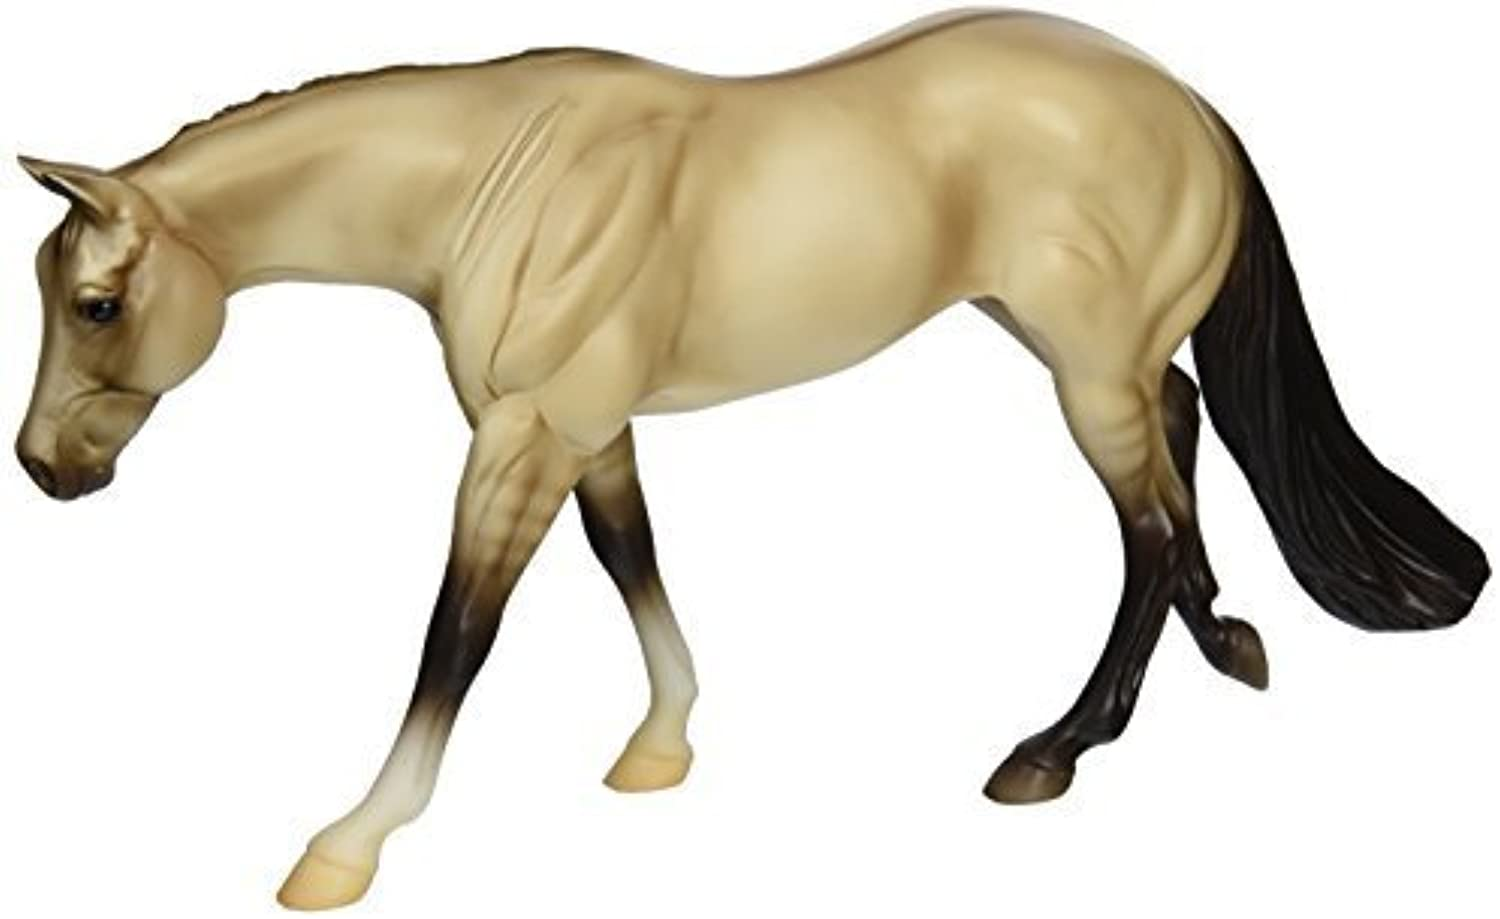 Breyer Classics Dun Quarter Horse Toy by